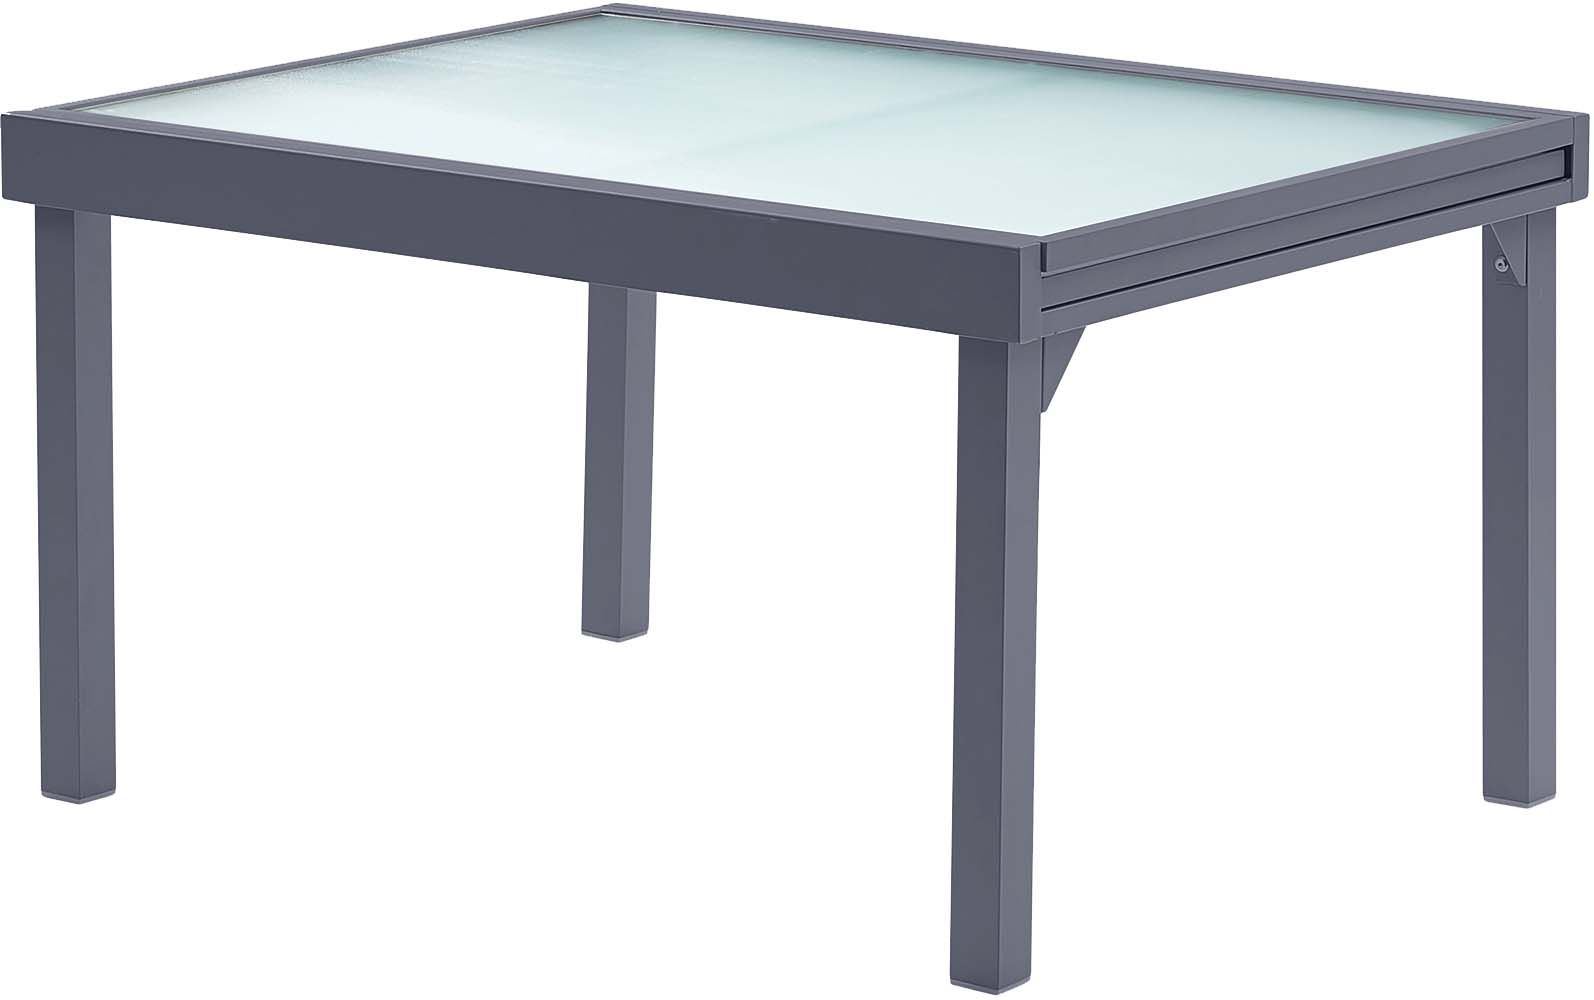 Table jardin modulo 6 10 personnes gris for Table 6 10 personnes